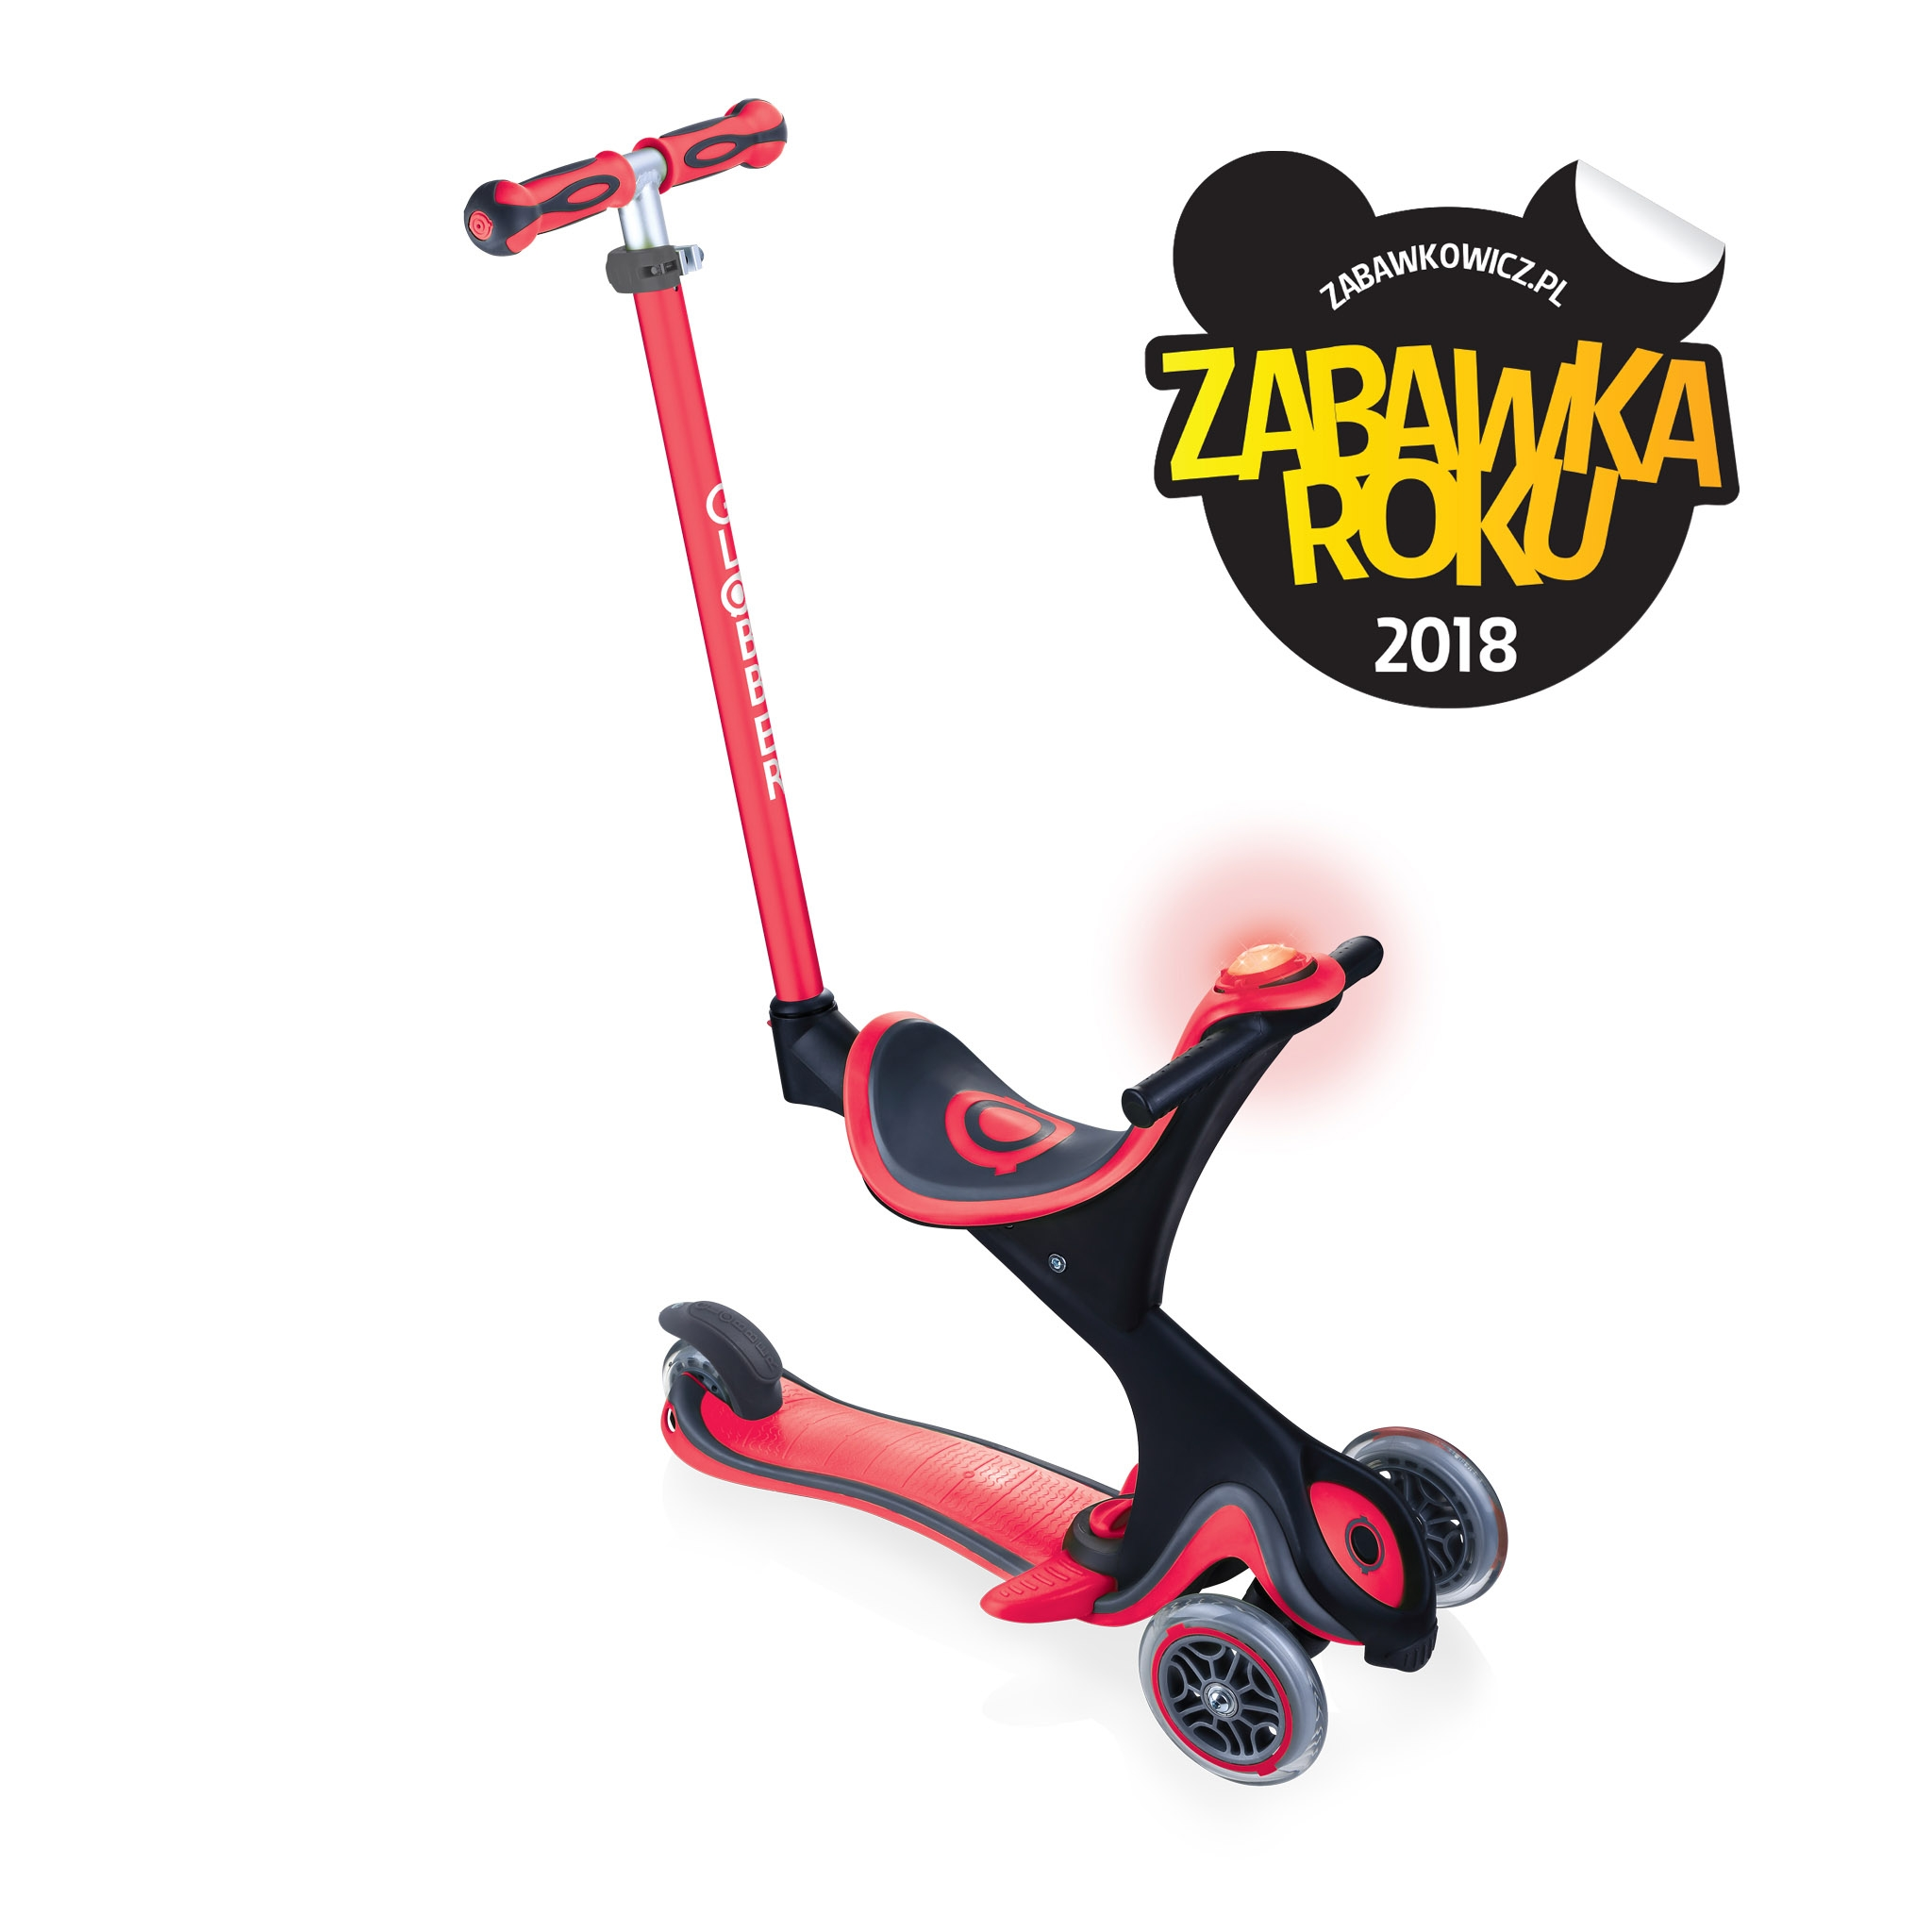 GO-UP-COMFORT-scooter-with-seat-and-LED-flash-and-sound-module_new-red 0